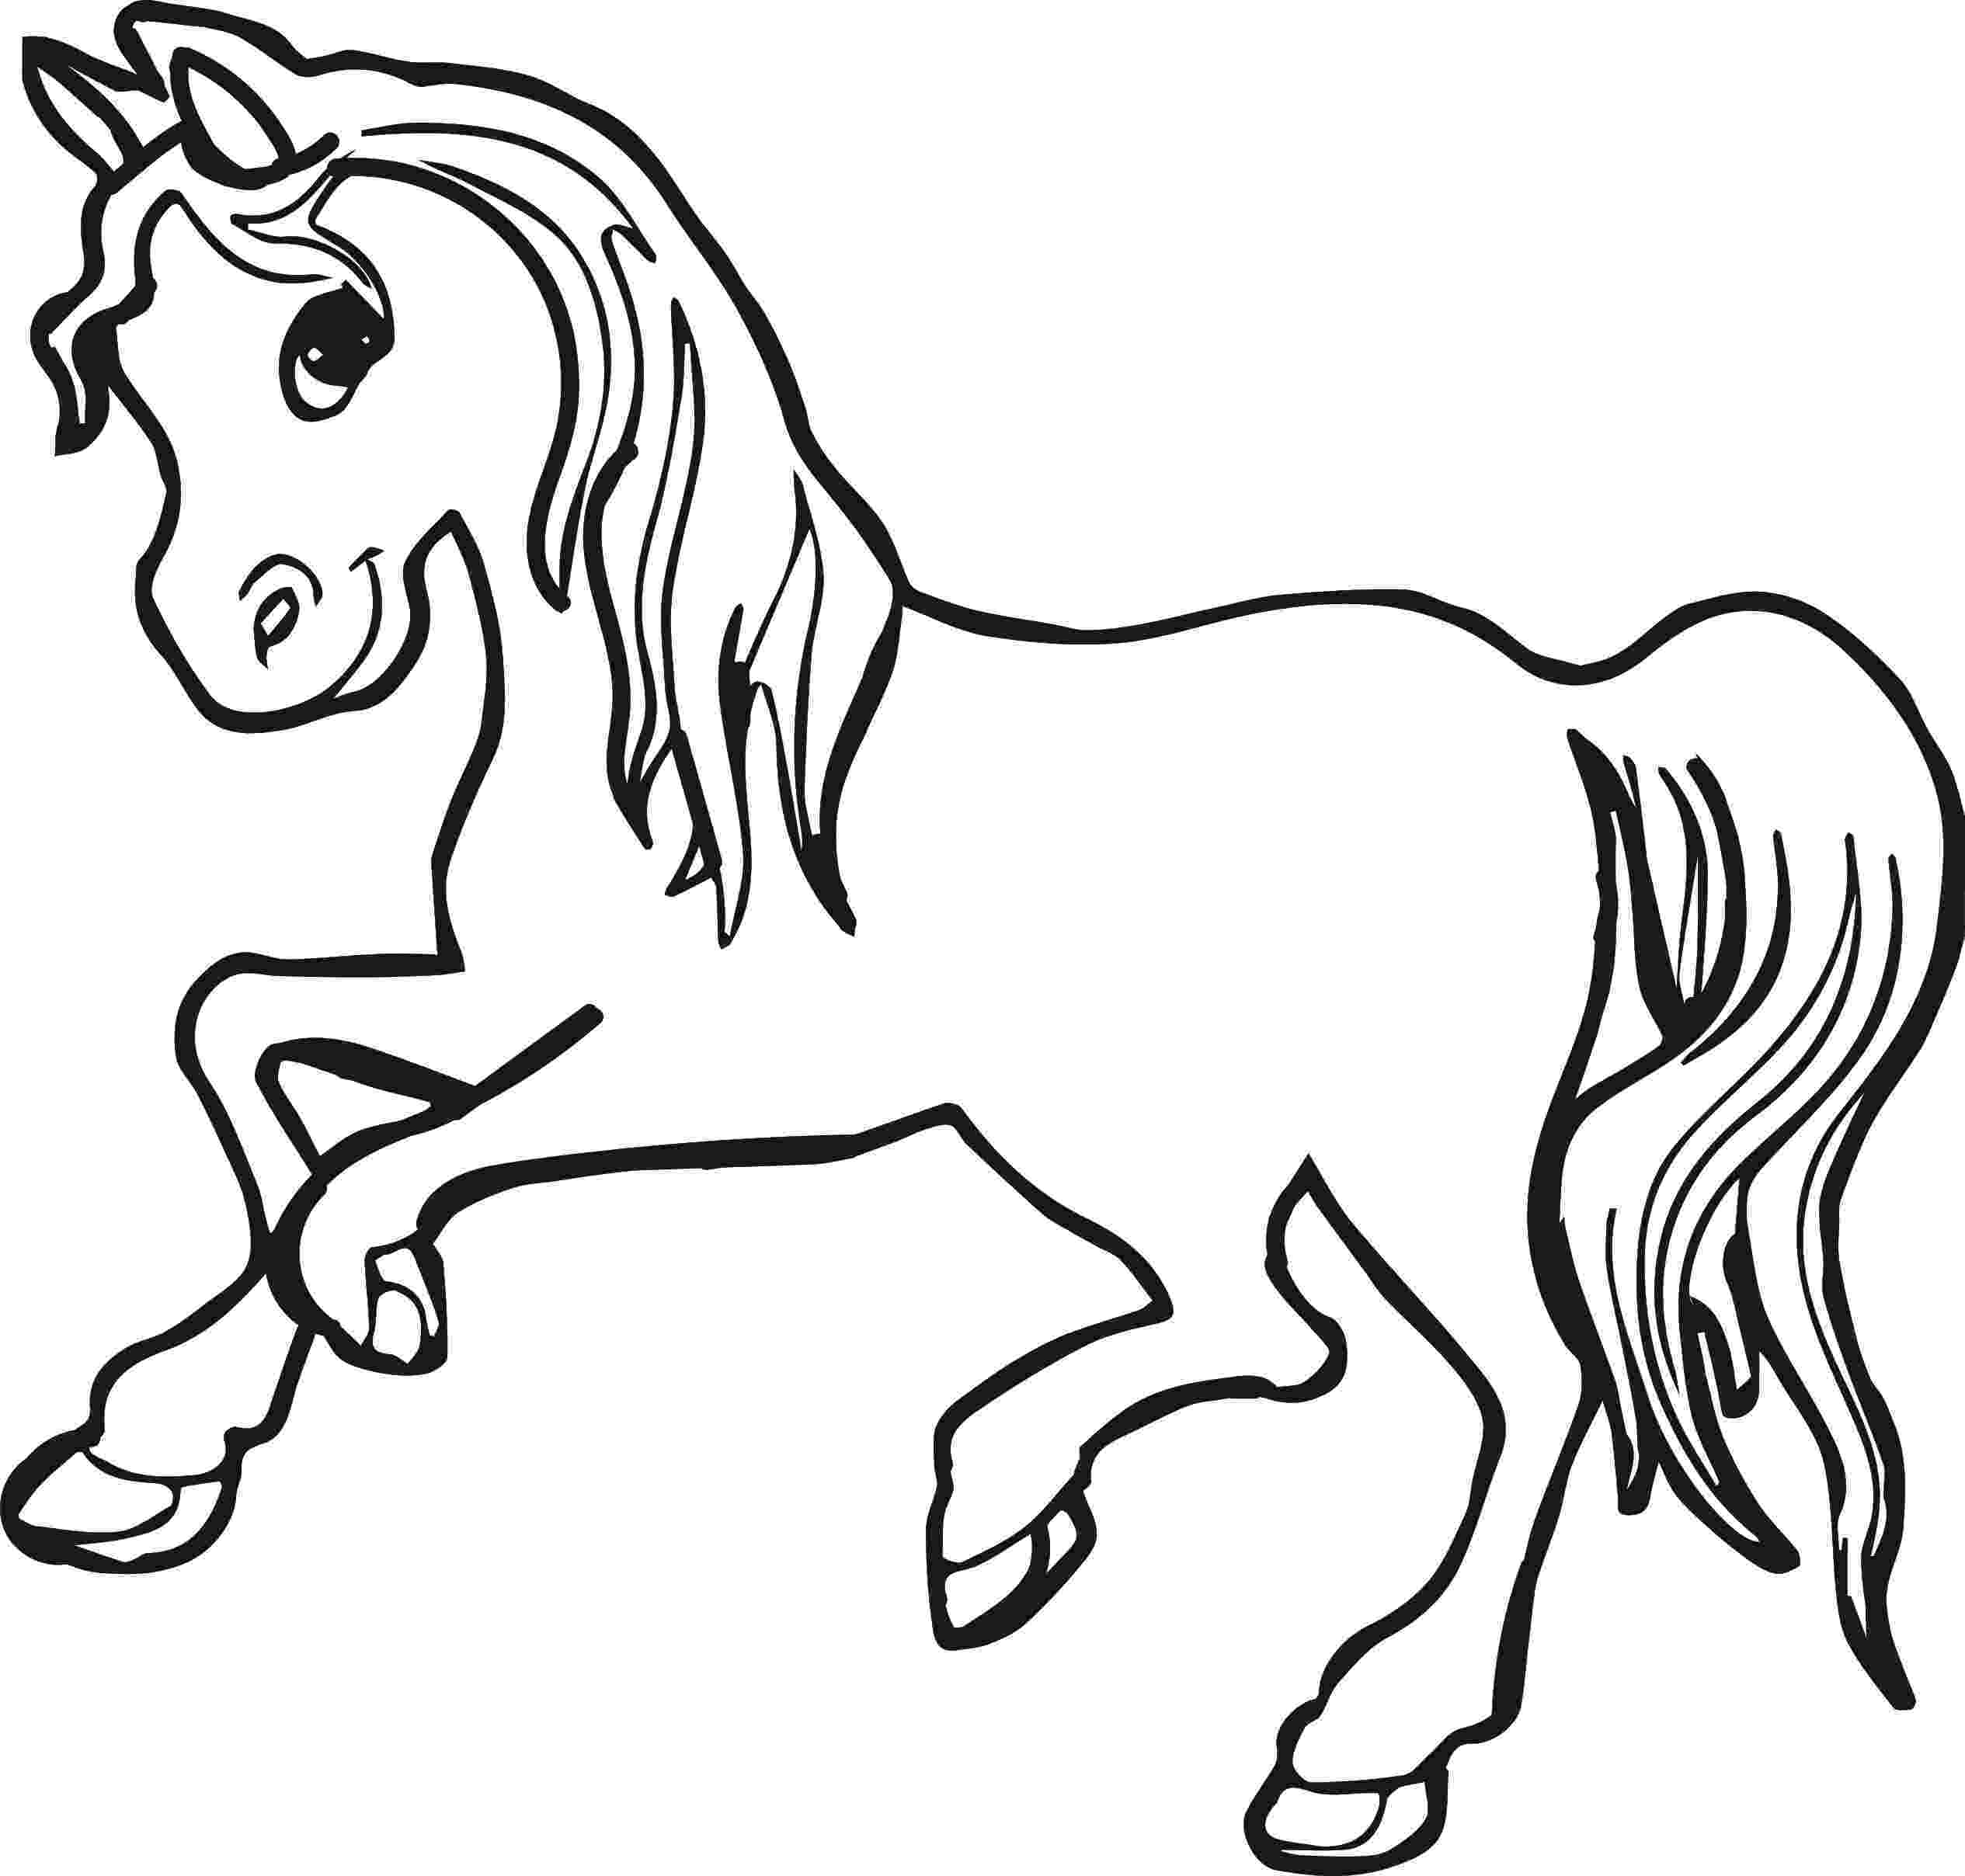 horse colouring horse coloring pages for kids coloring pages for kids colouring horse